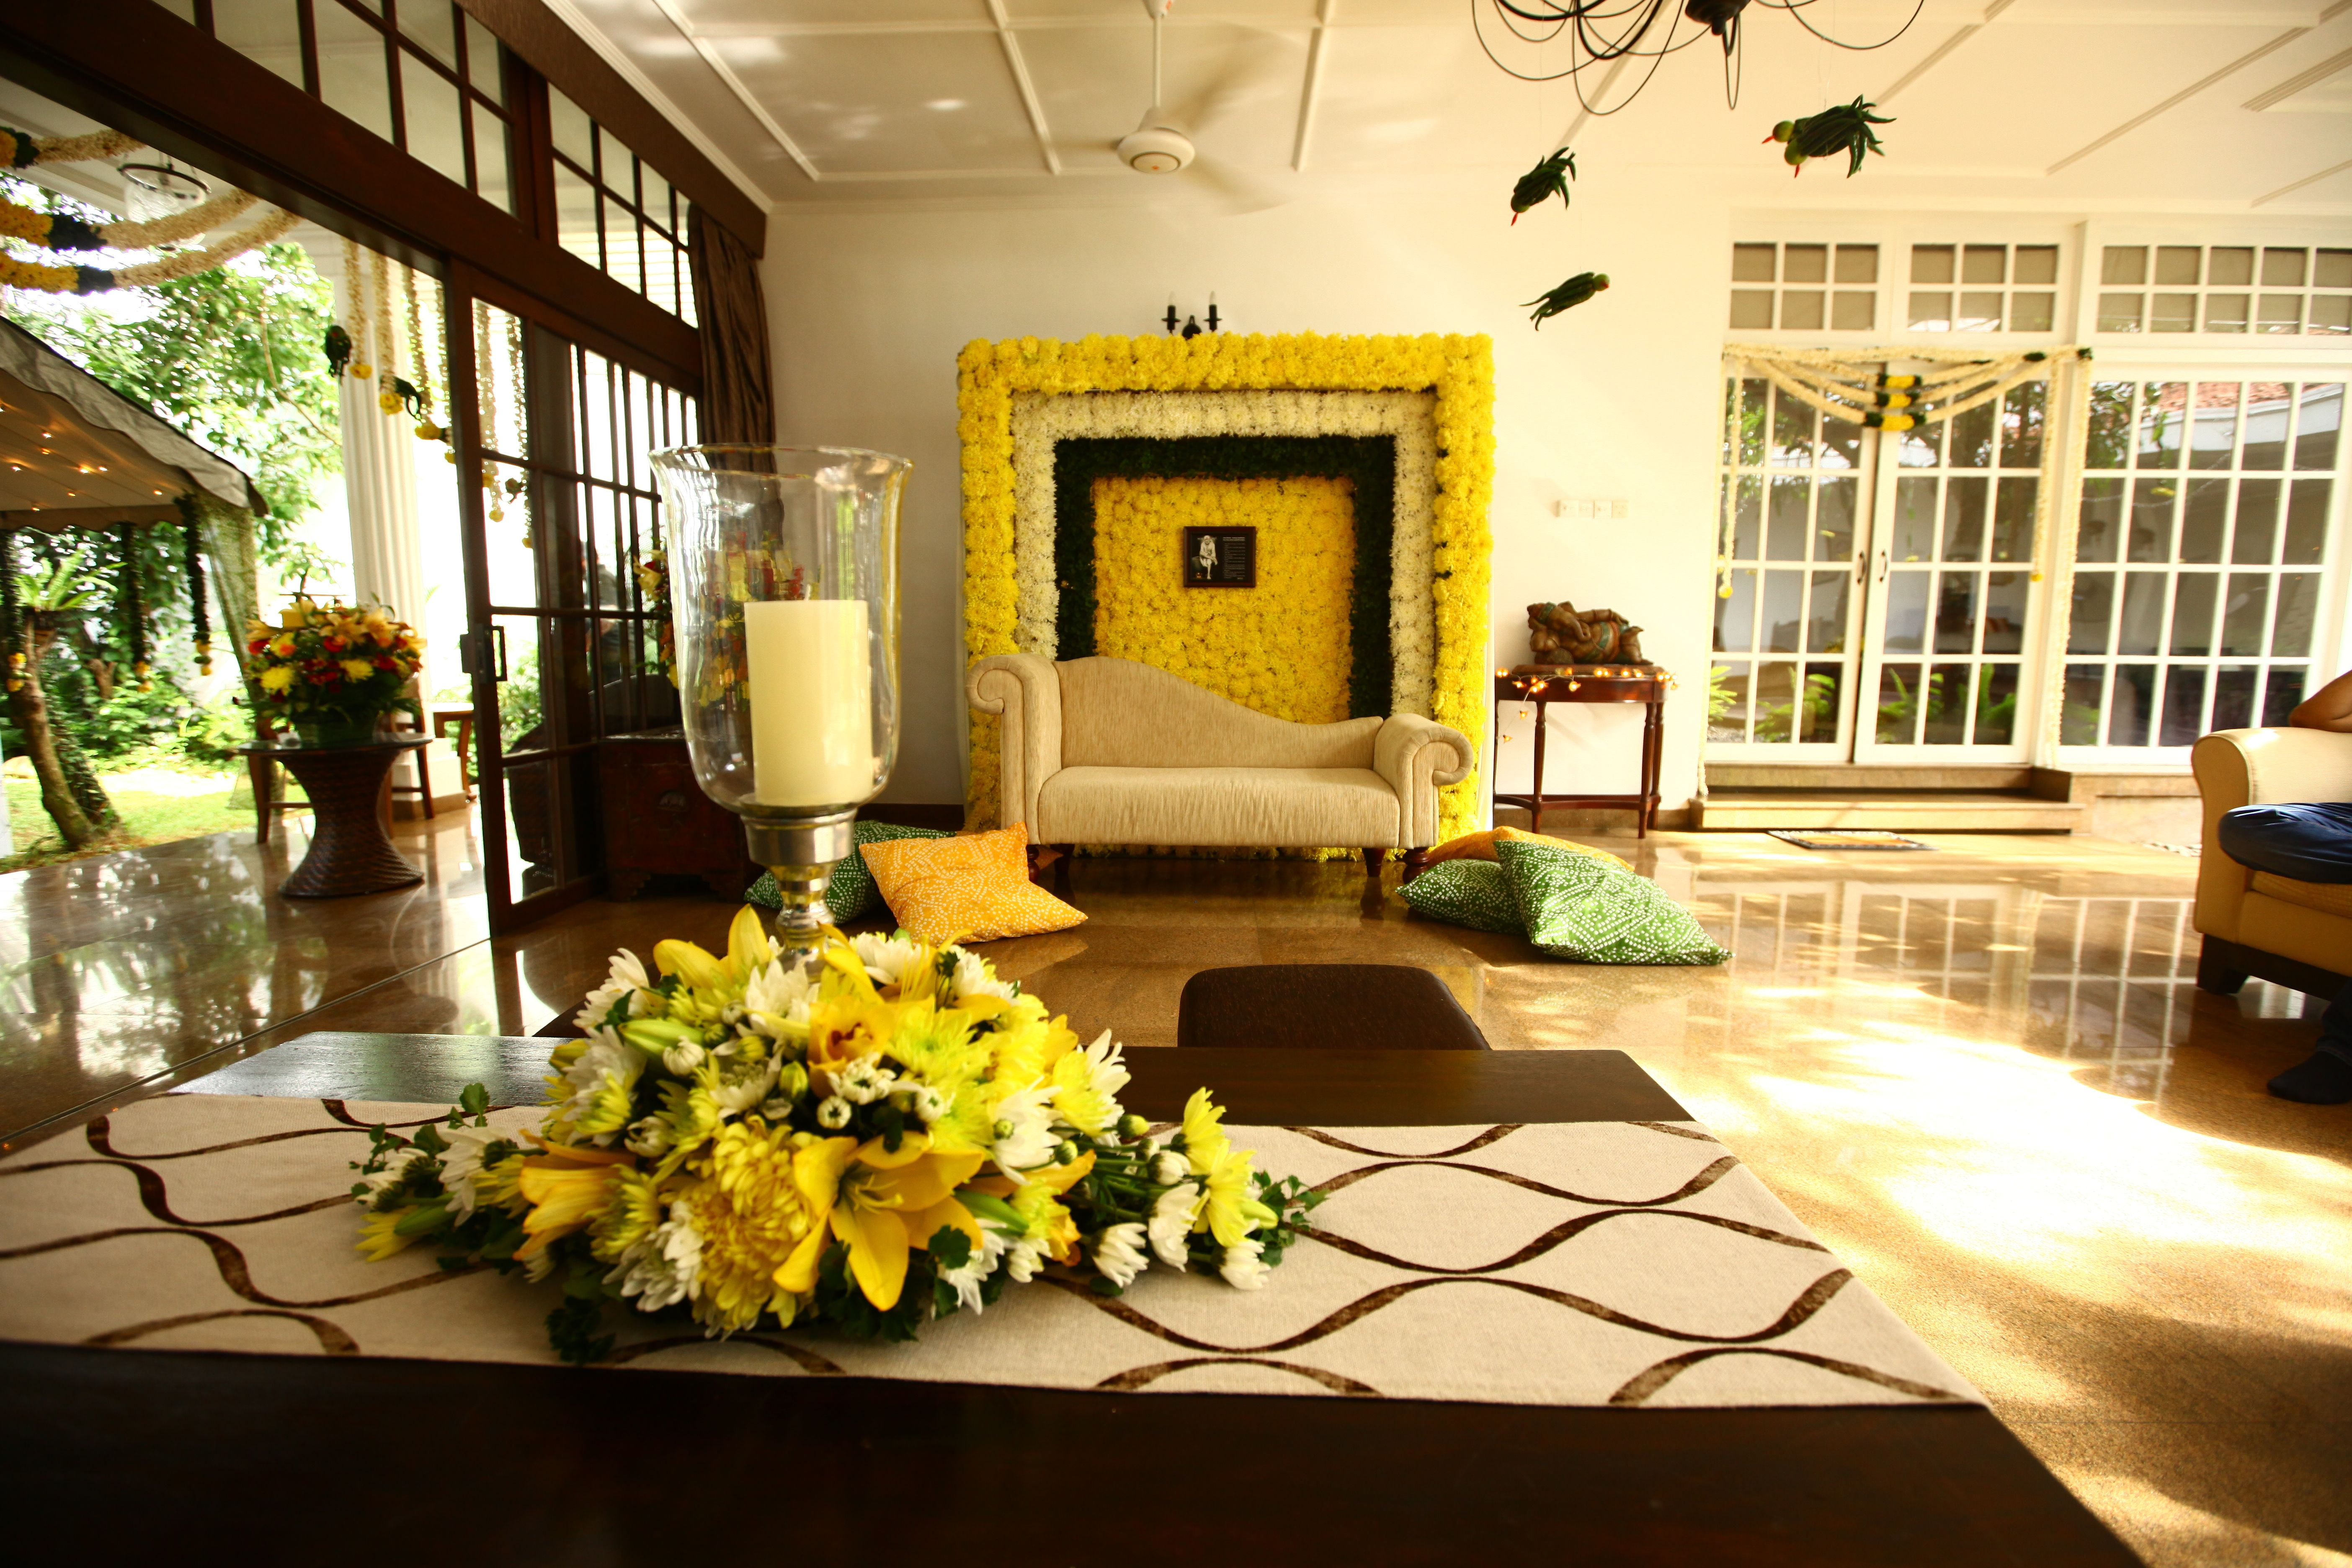 Gorgeous floral decor inside the house can use the floral background gorgeous floral decor inside the house can use the floral background to keep for ganesh puja junglespirit Choice Image